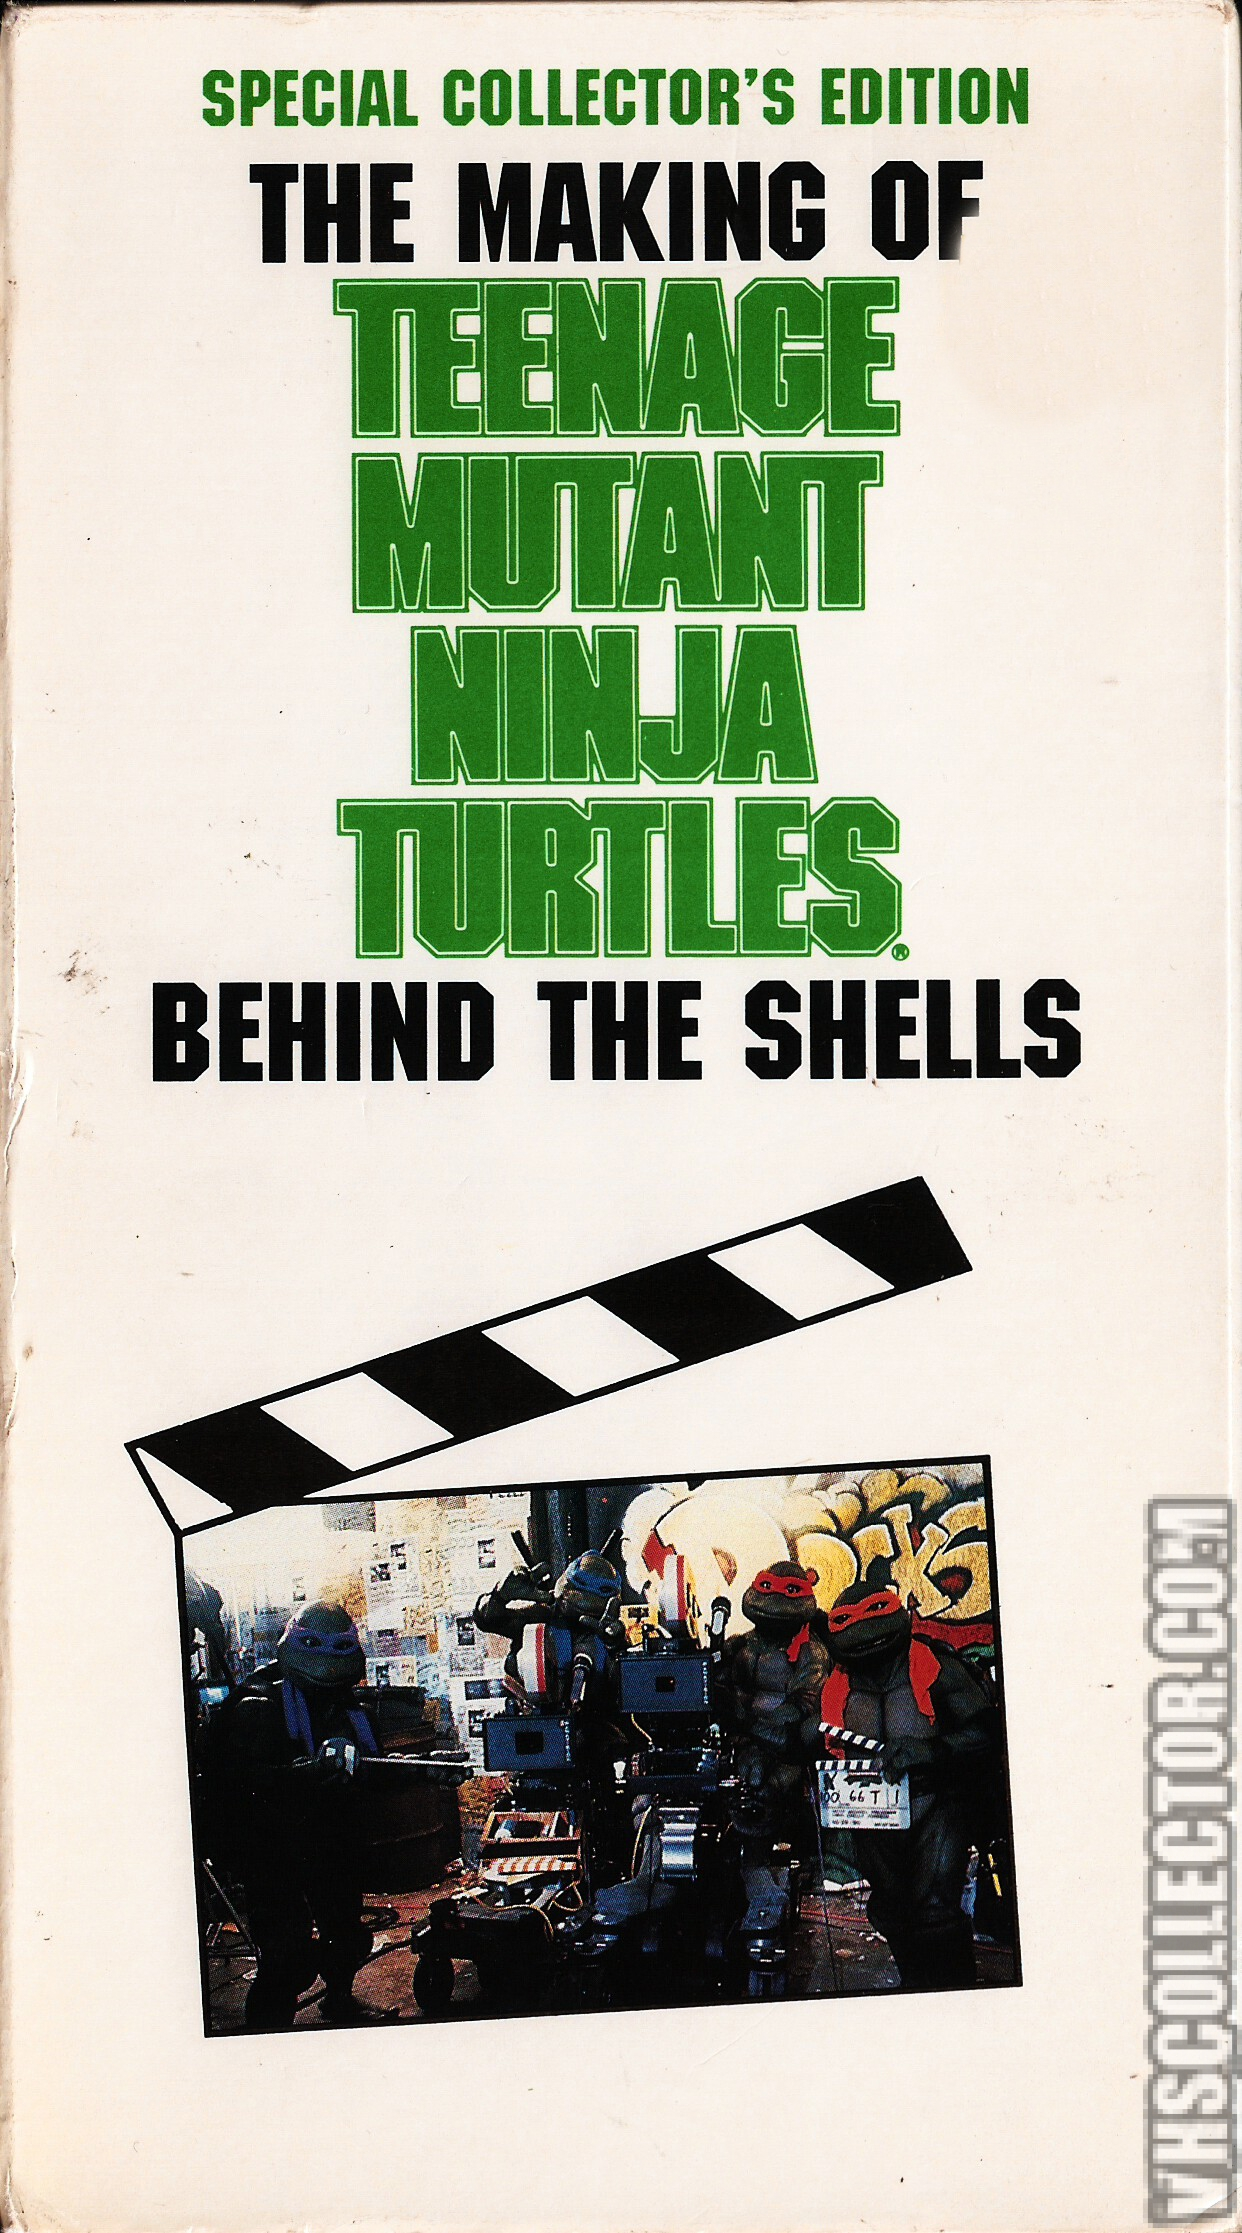 TMNT_Behind_The_Shells_COLUMBIA_PICTURES_Front.jpg